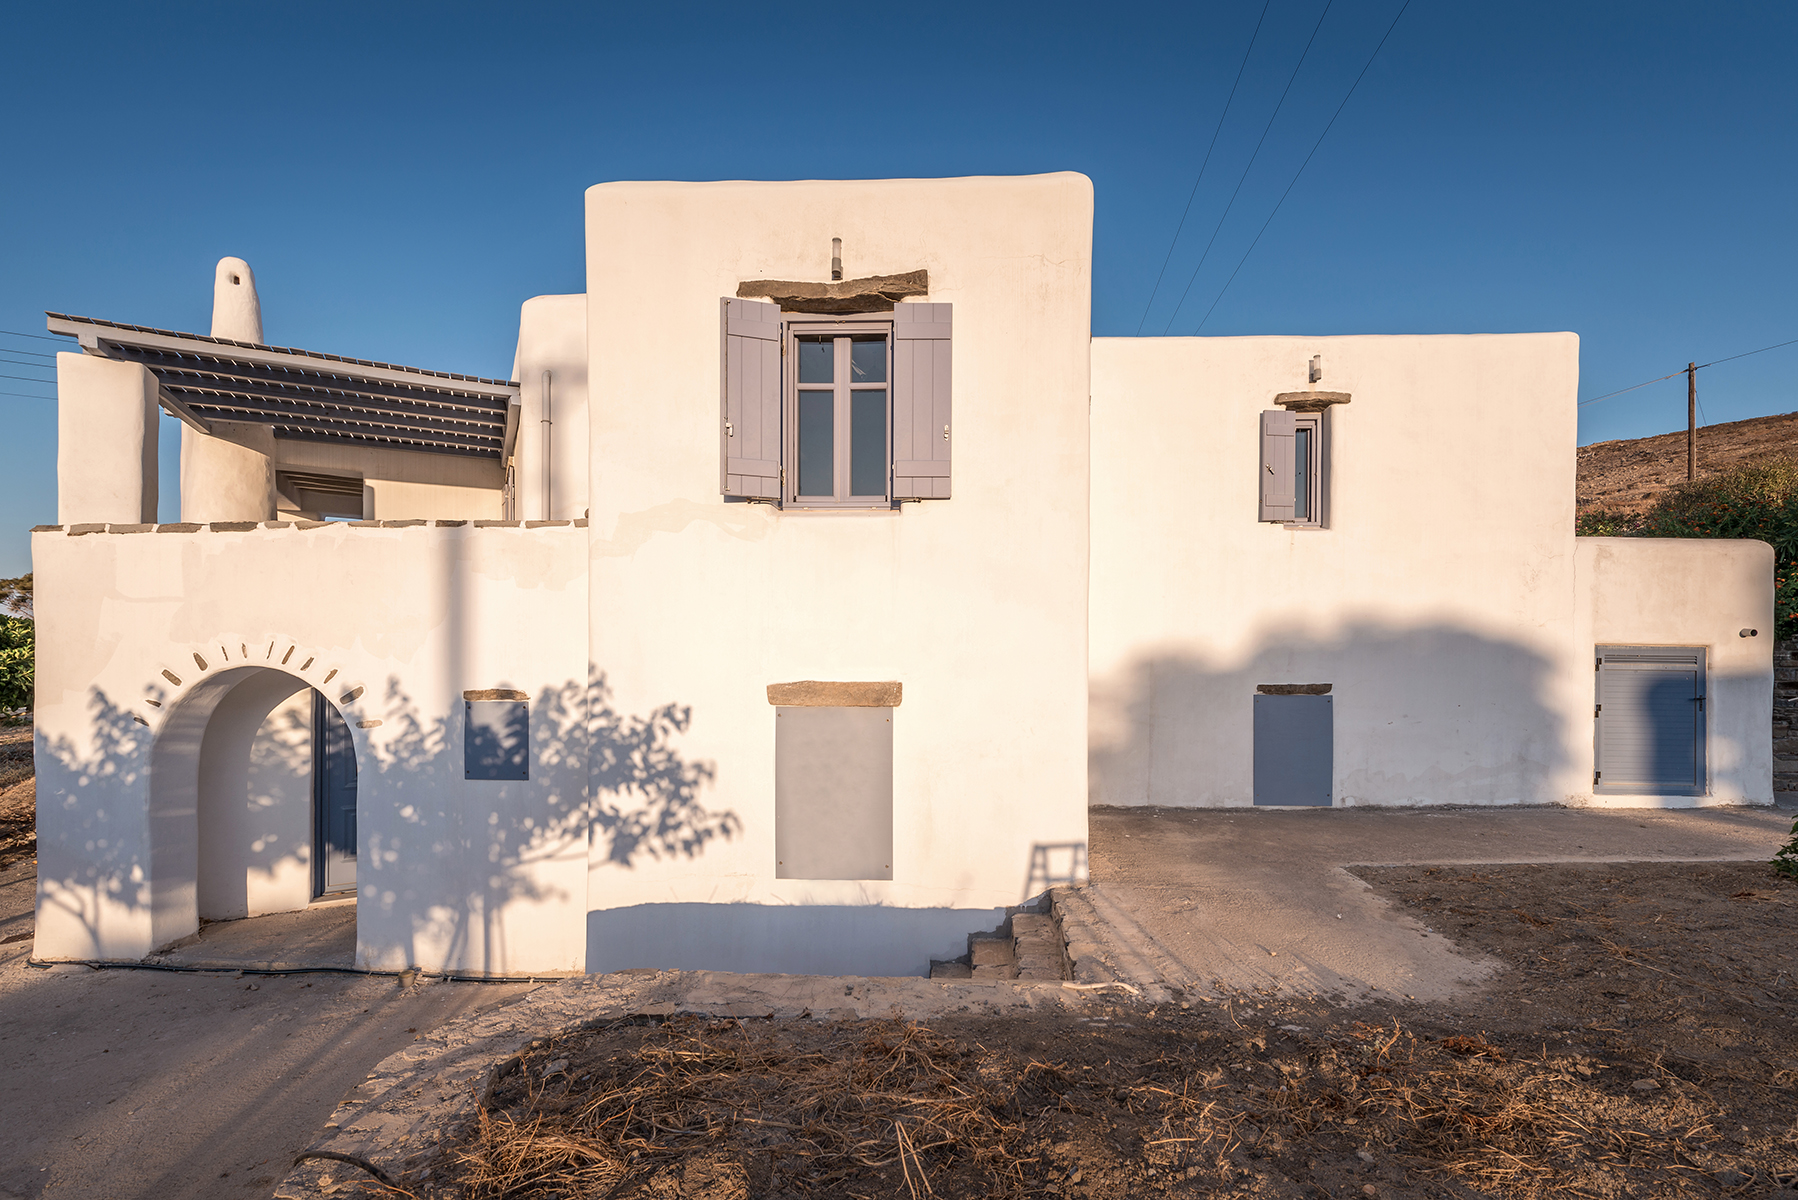 Paros exter firstlight5_800_0059